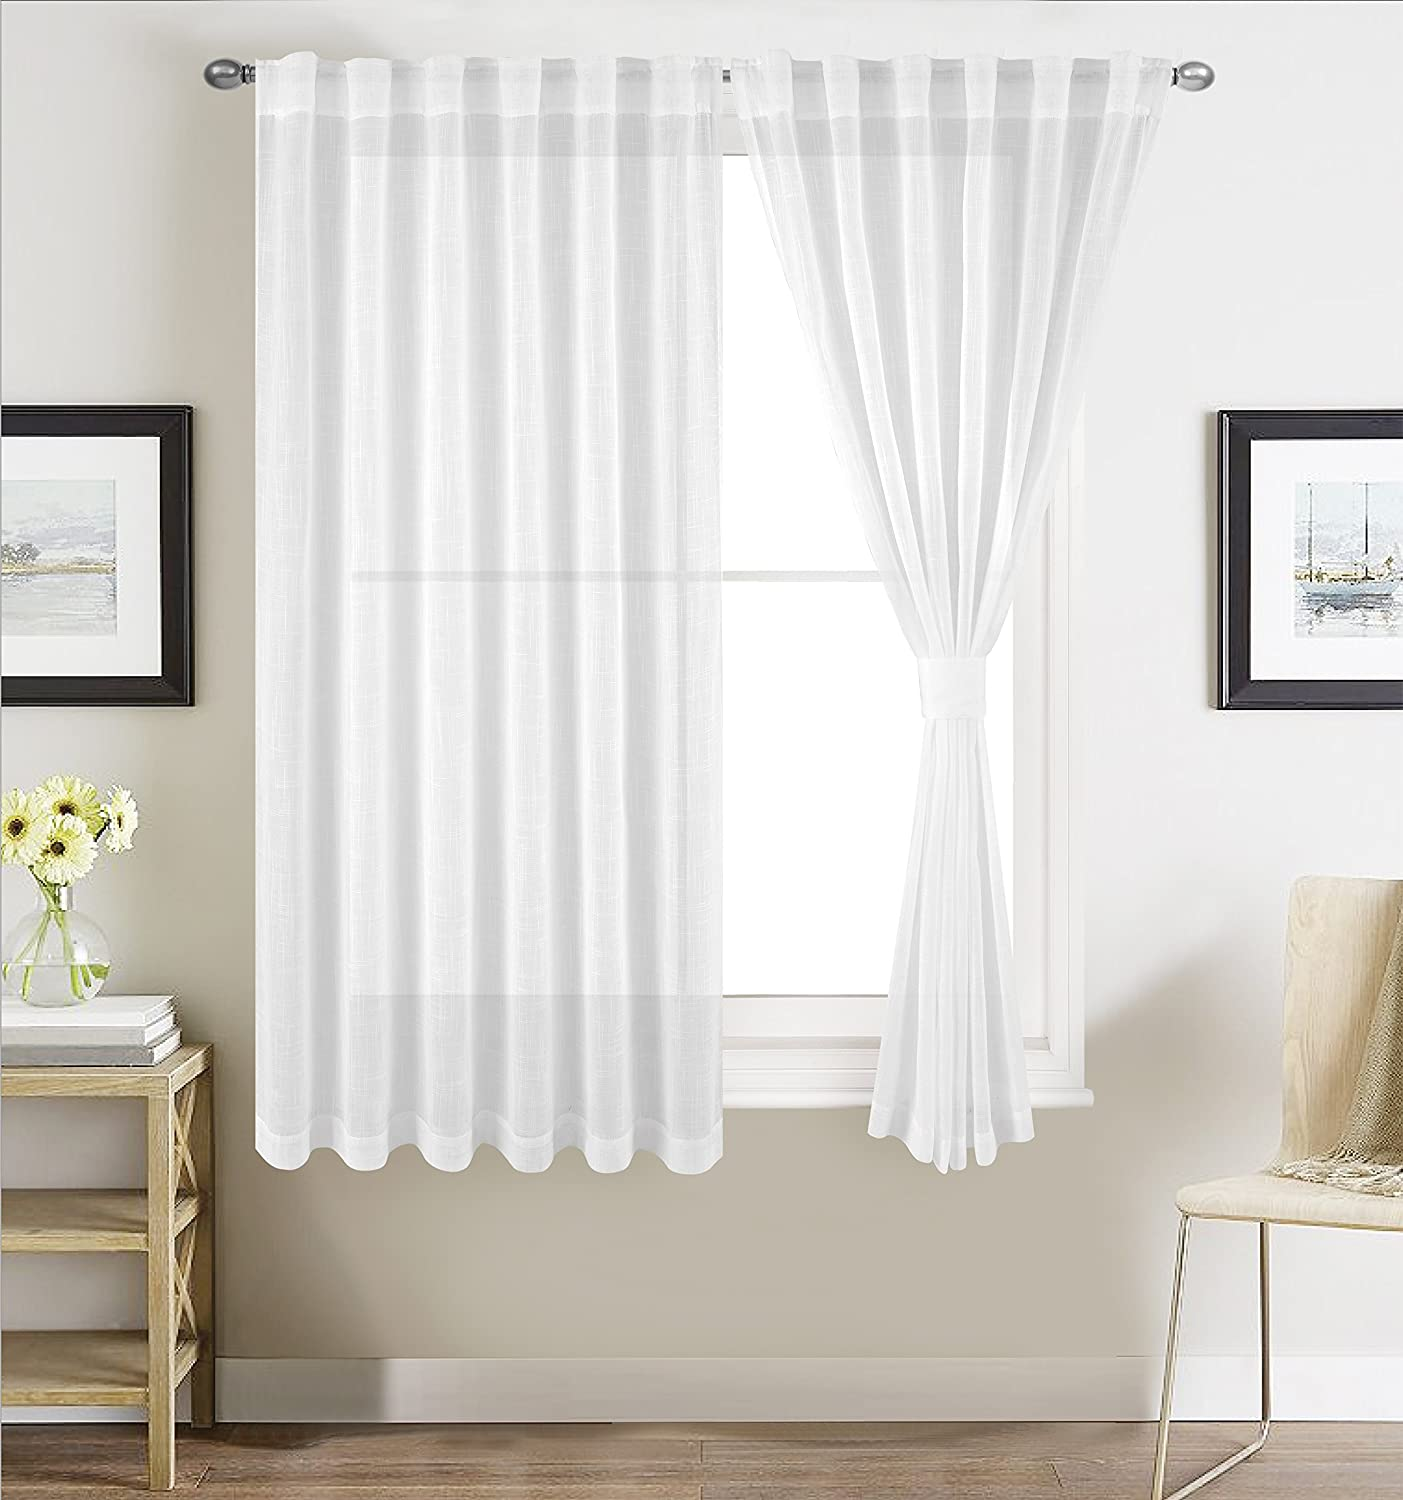 """Sheer Window Curtains for Bedroom Linen Textured White Sheer Curtain Panels for Living Room W54"""" by L46"""", Rod Pocket and Back Tab, 2 Panels by Better Home USA"""